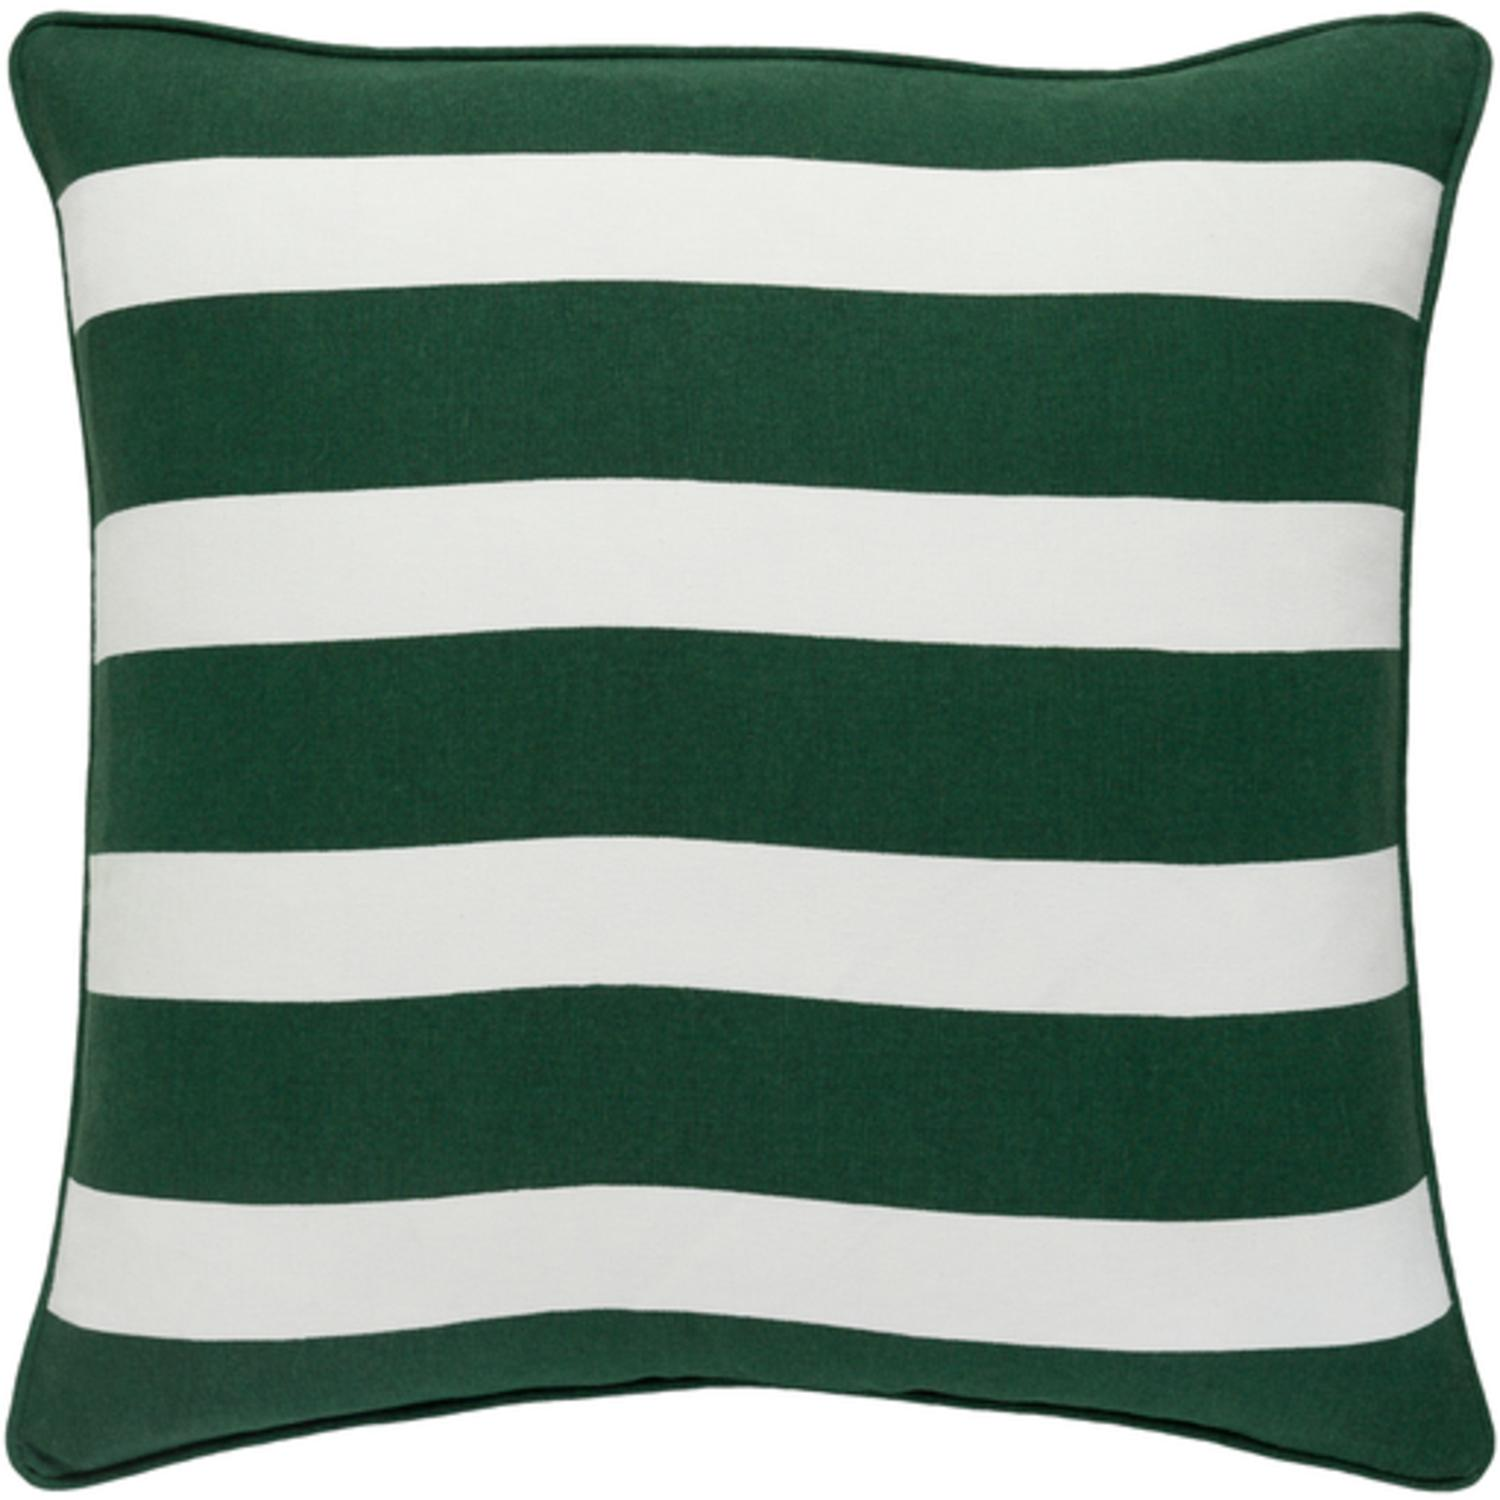 "18"" Snow White and Forest Green Peppermint Strip Decorative Holiday Throw Pillow –Down Filler"